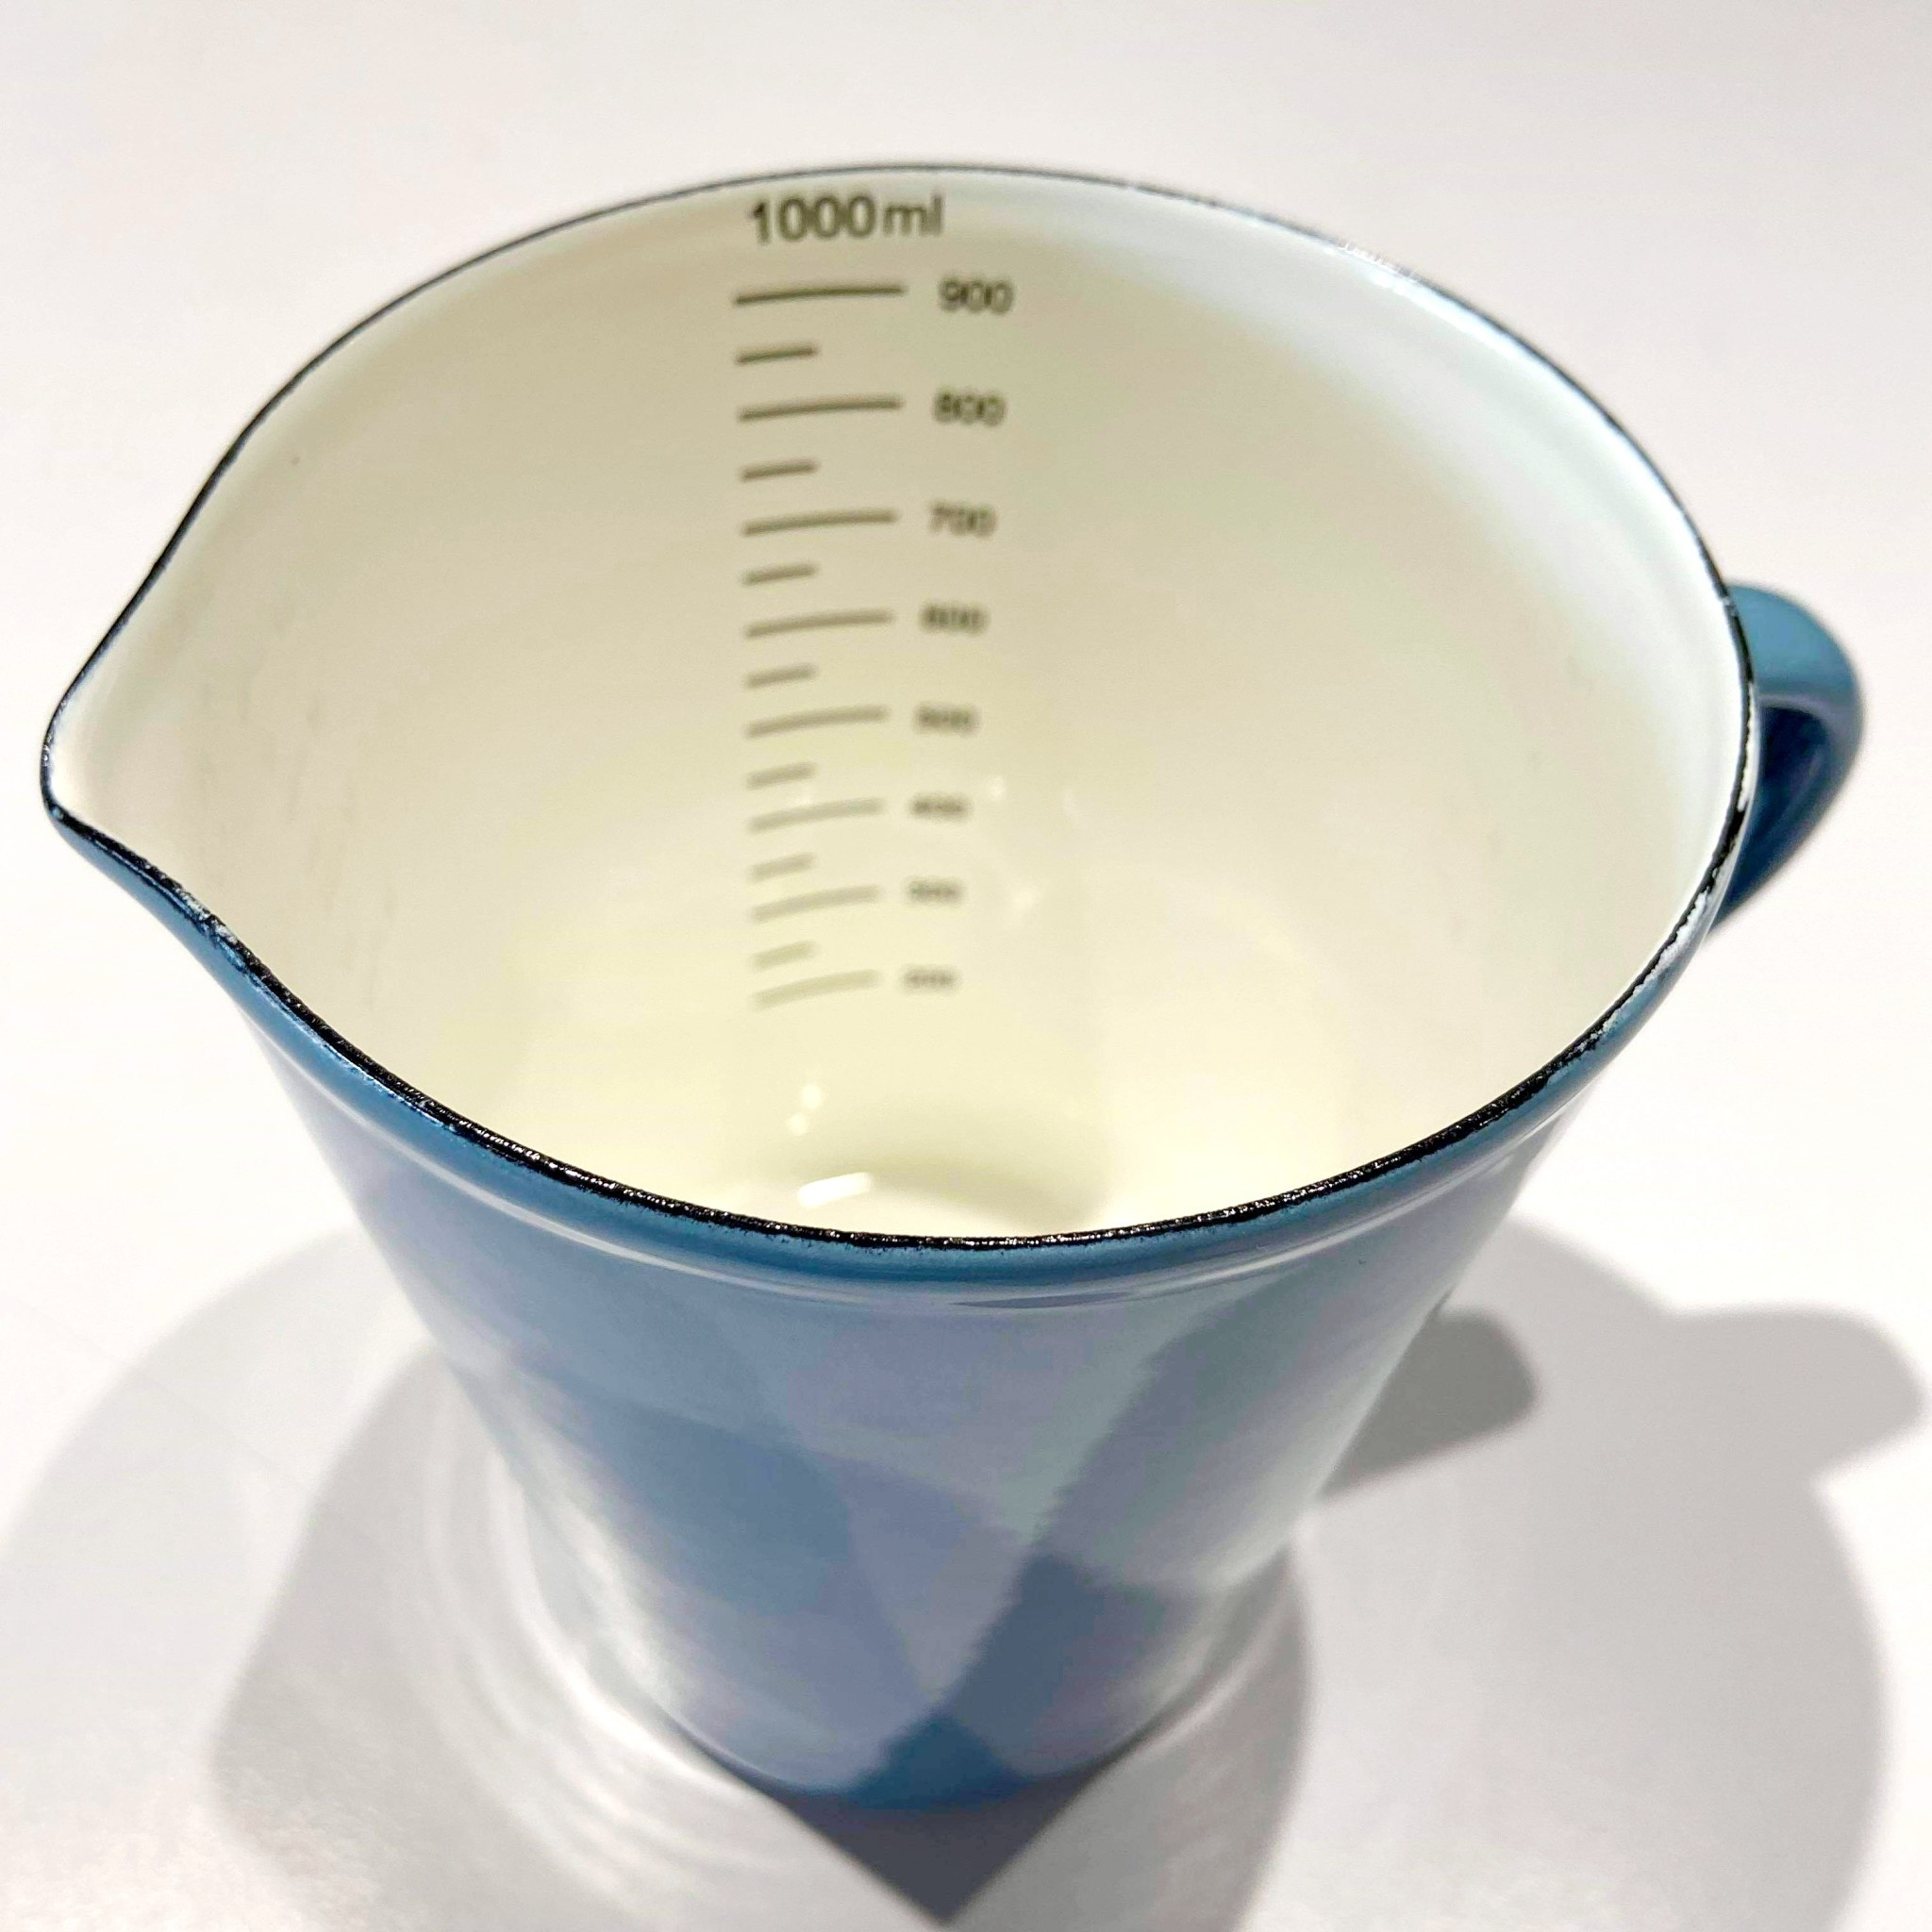 1 Litre Blue Measuring Cup